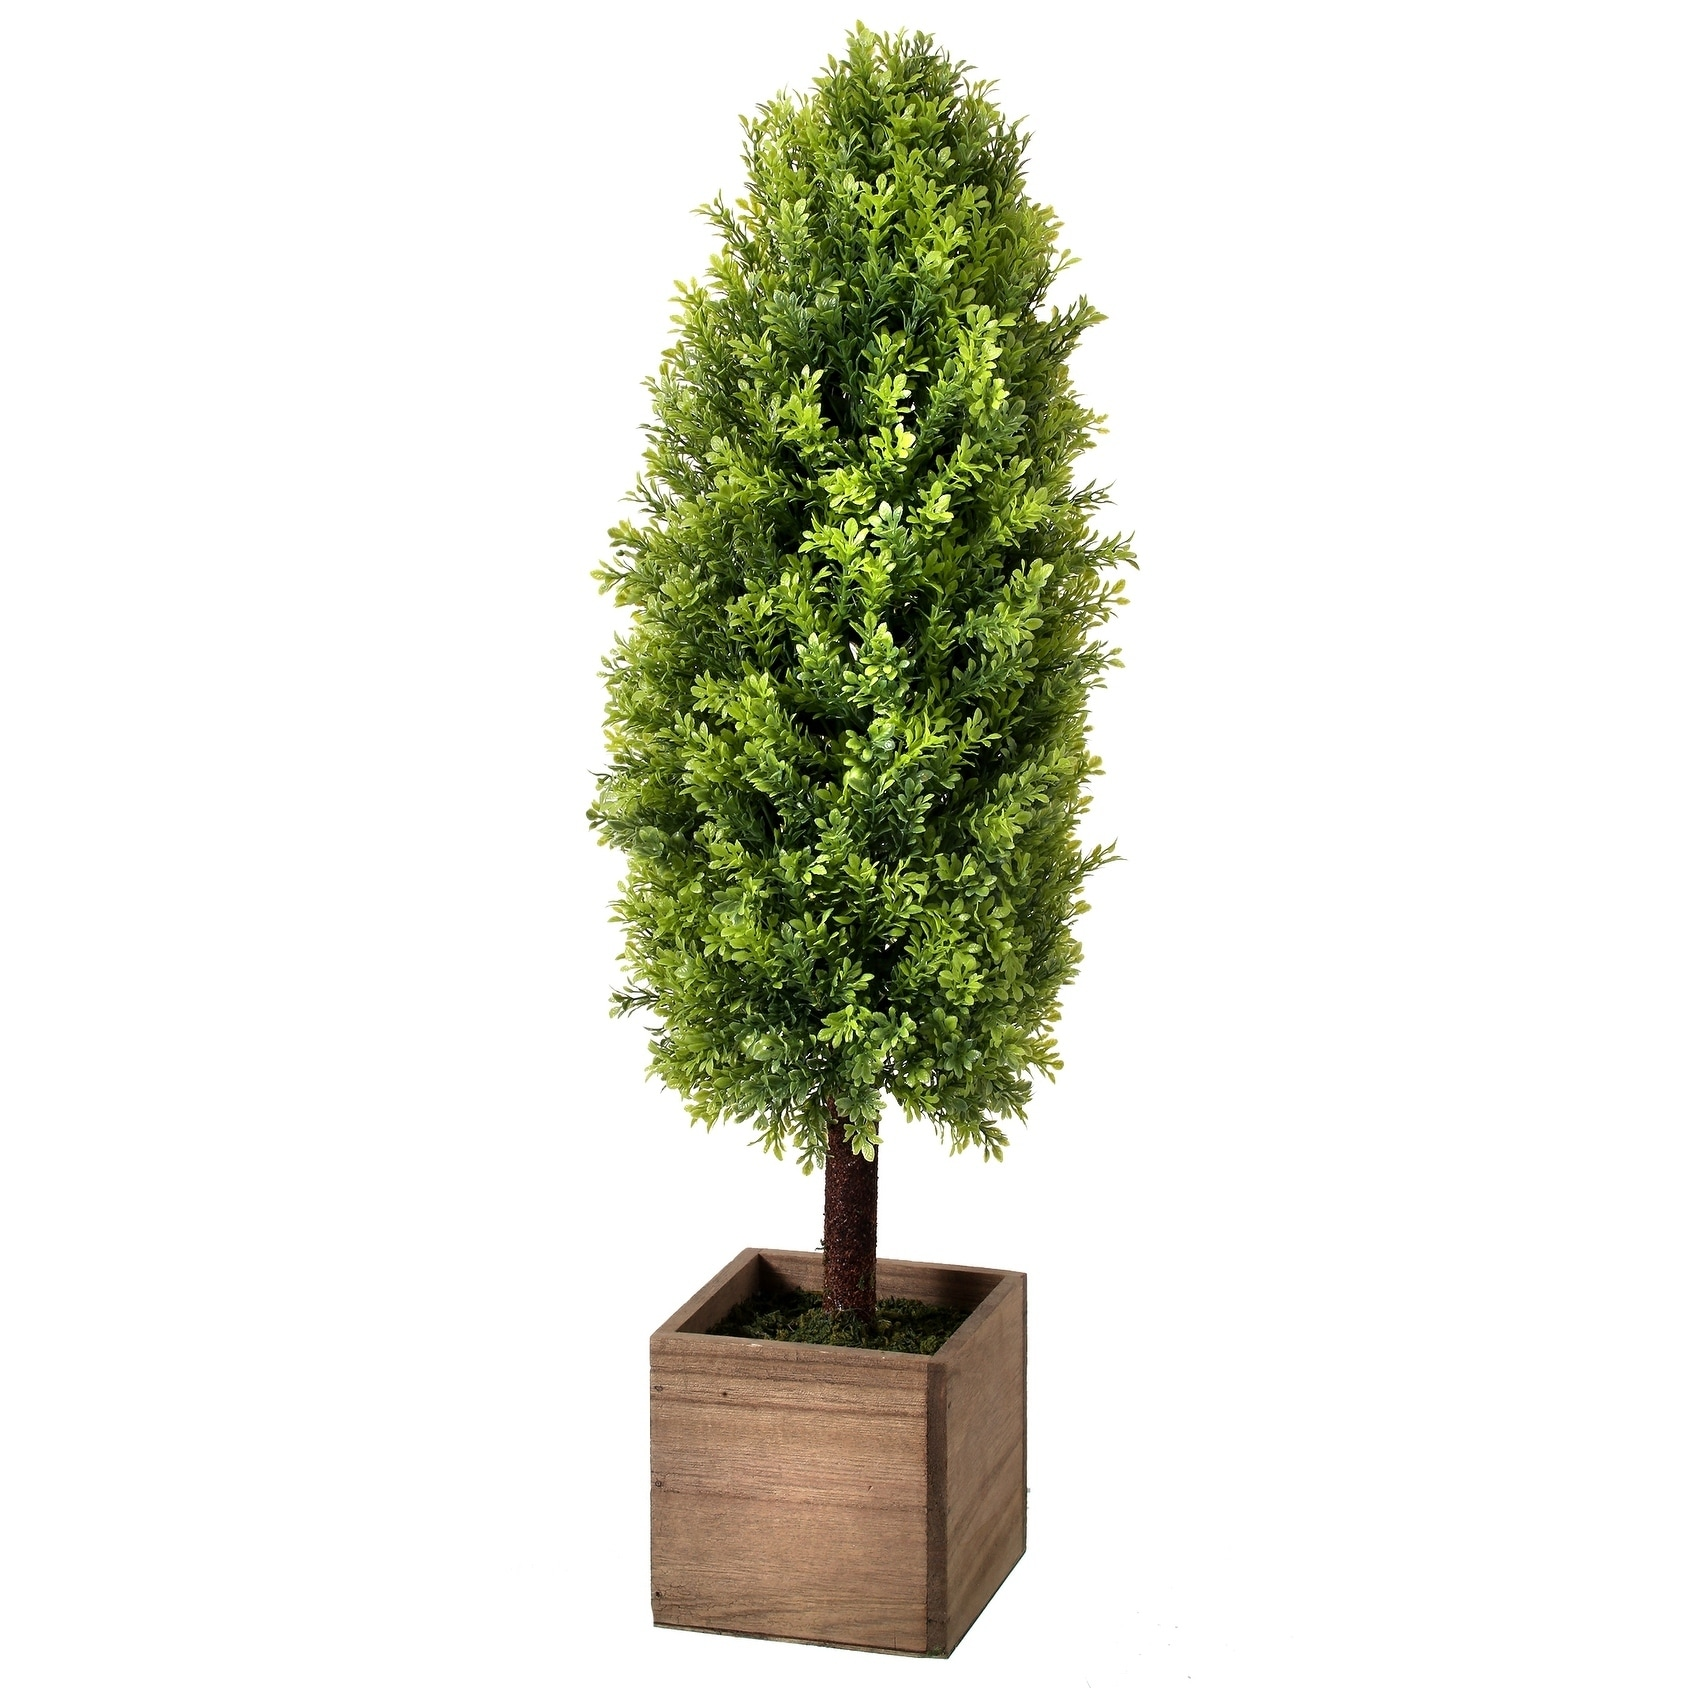 Baby Boxwood Tapered Topiary in Wood Box 25 - Plastic